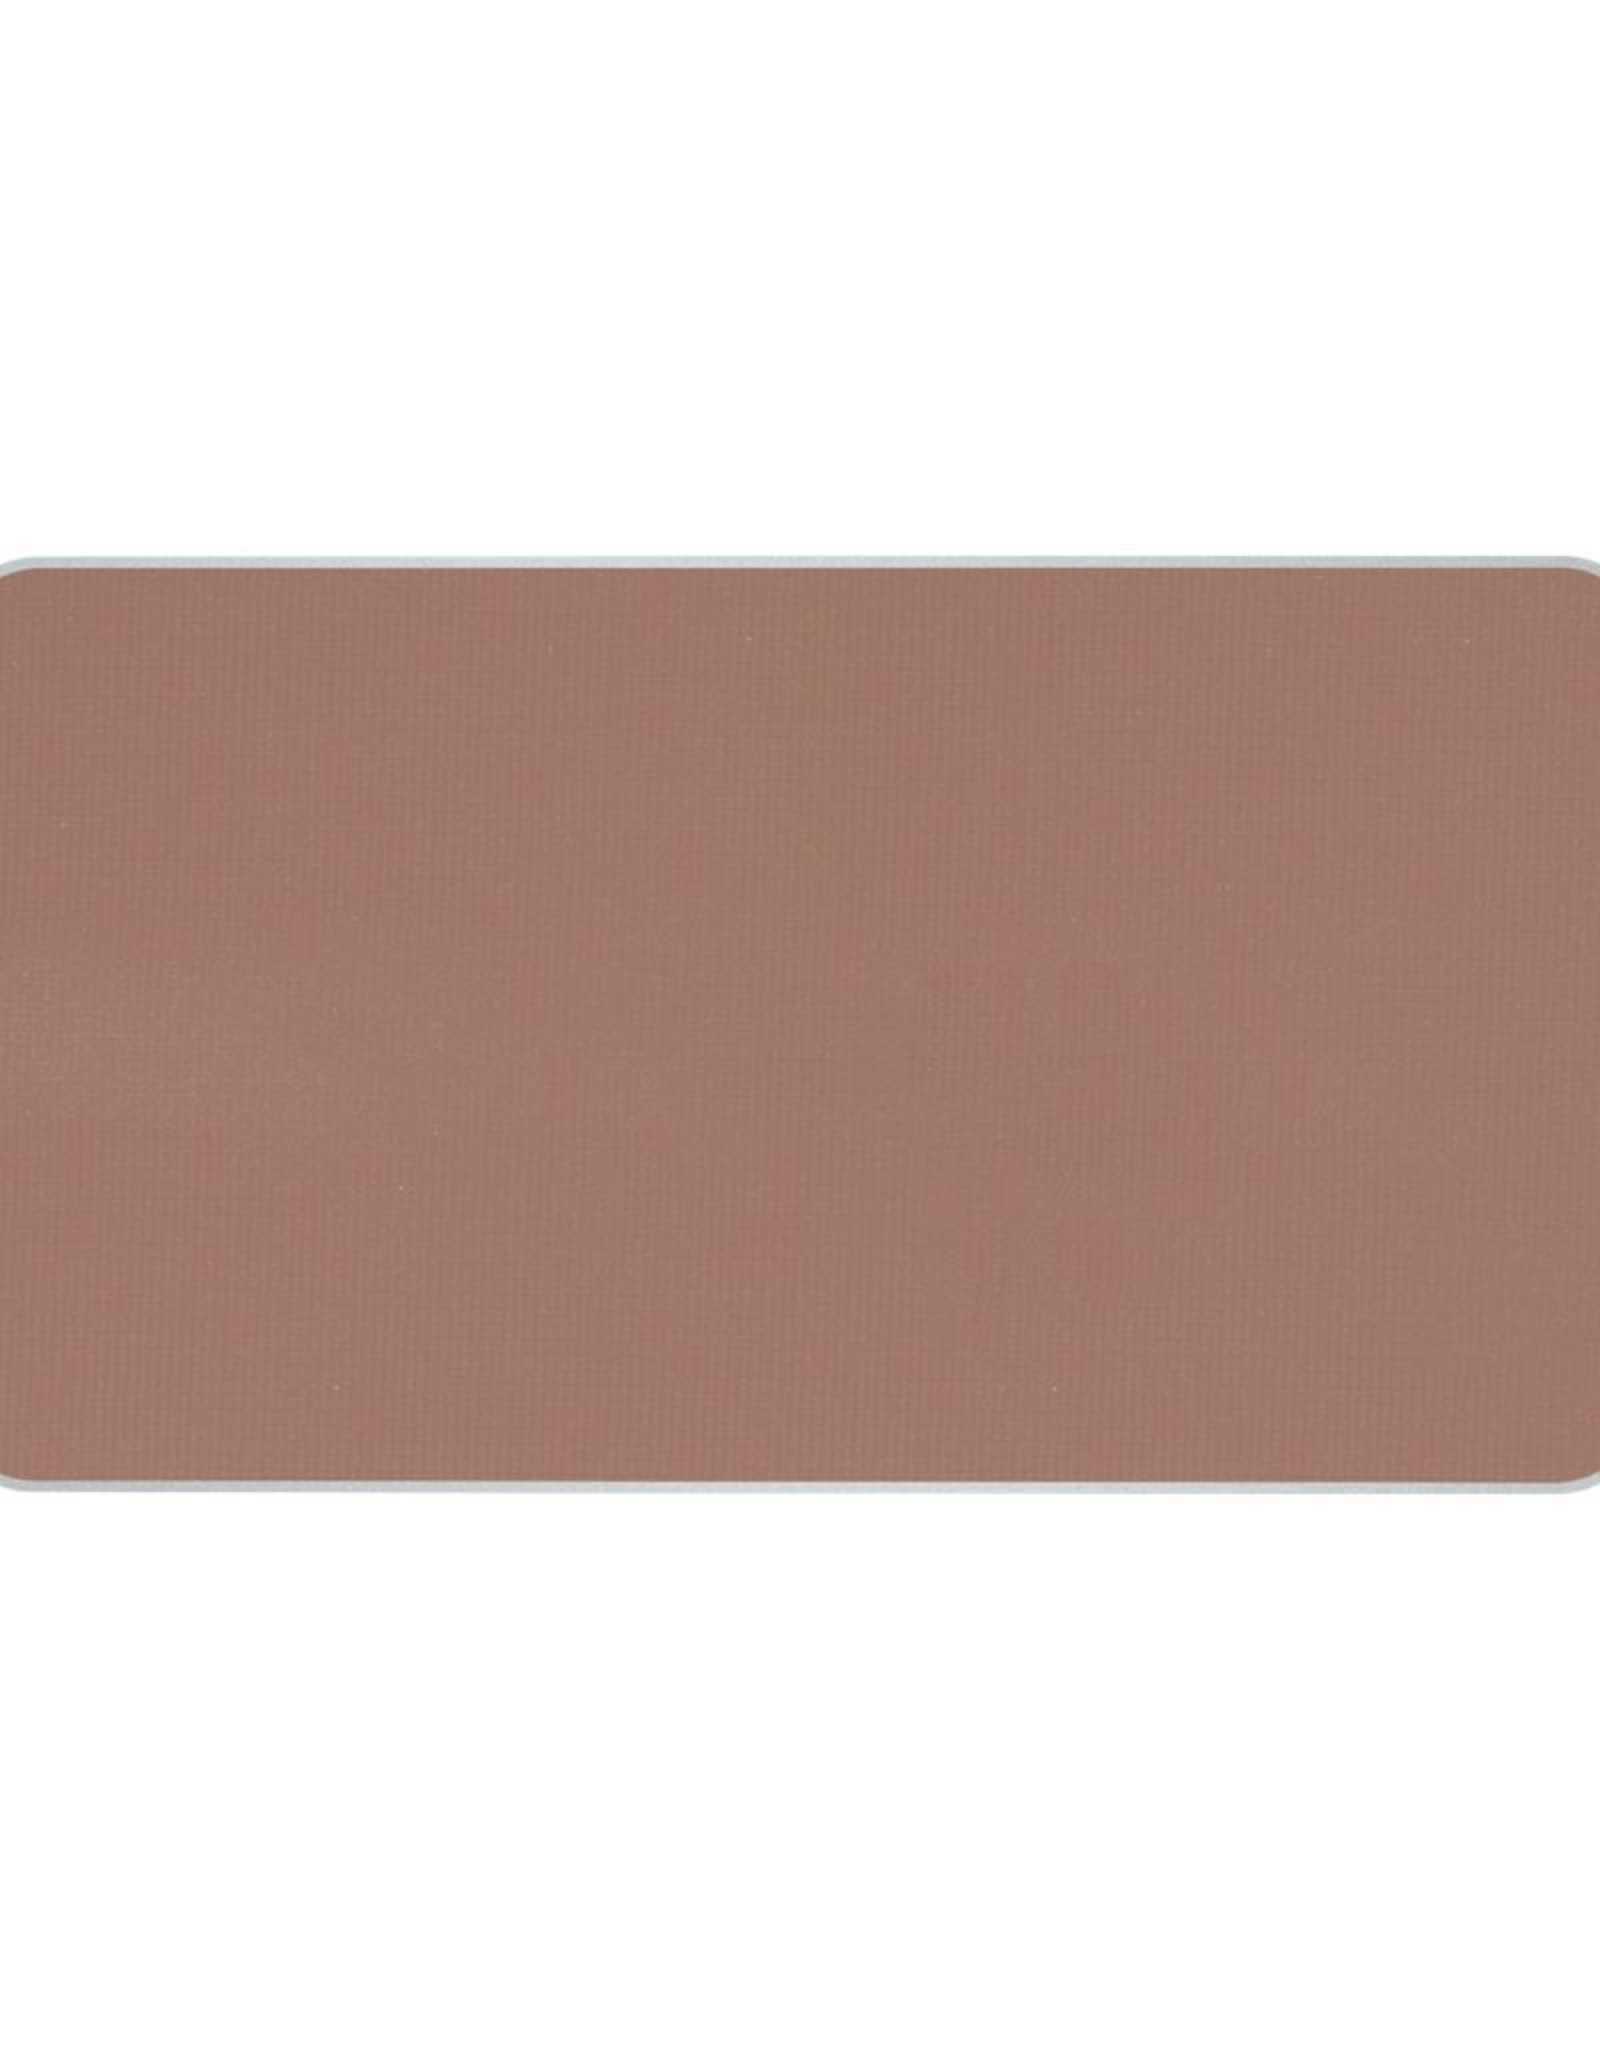 MUFE ARTIST FACE COLORS 5G S116